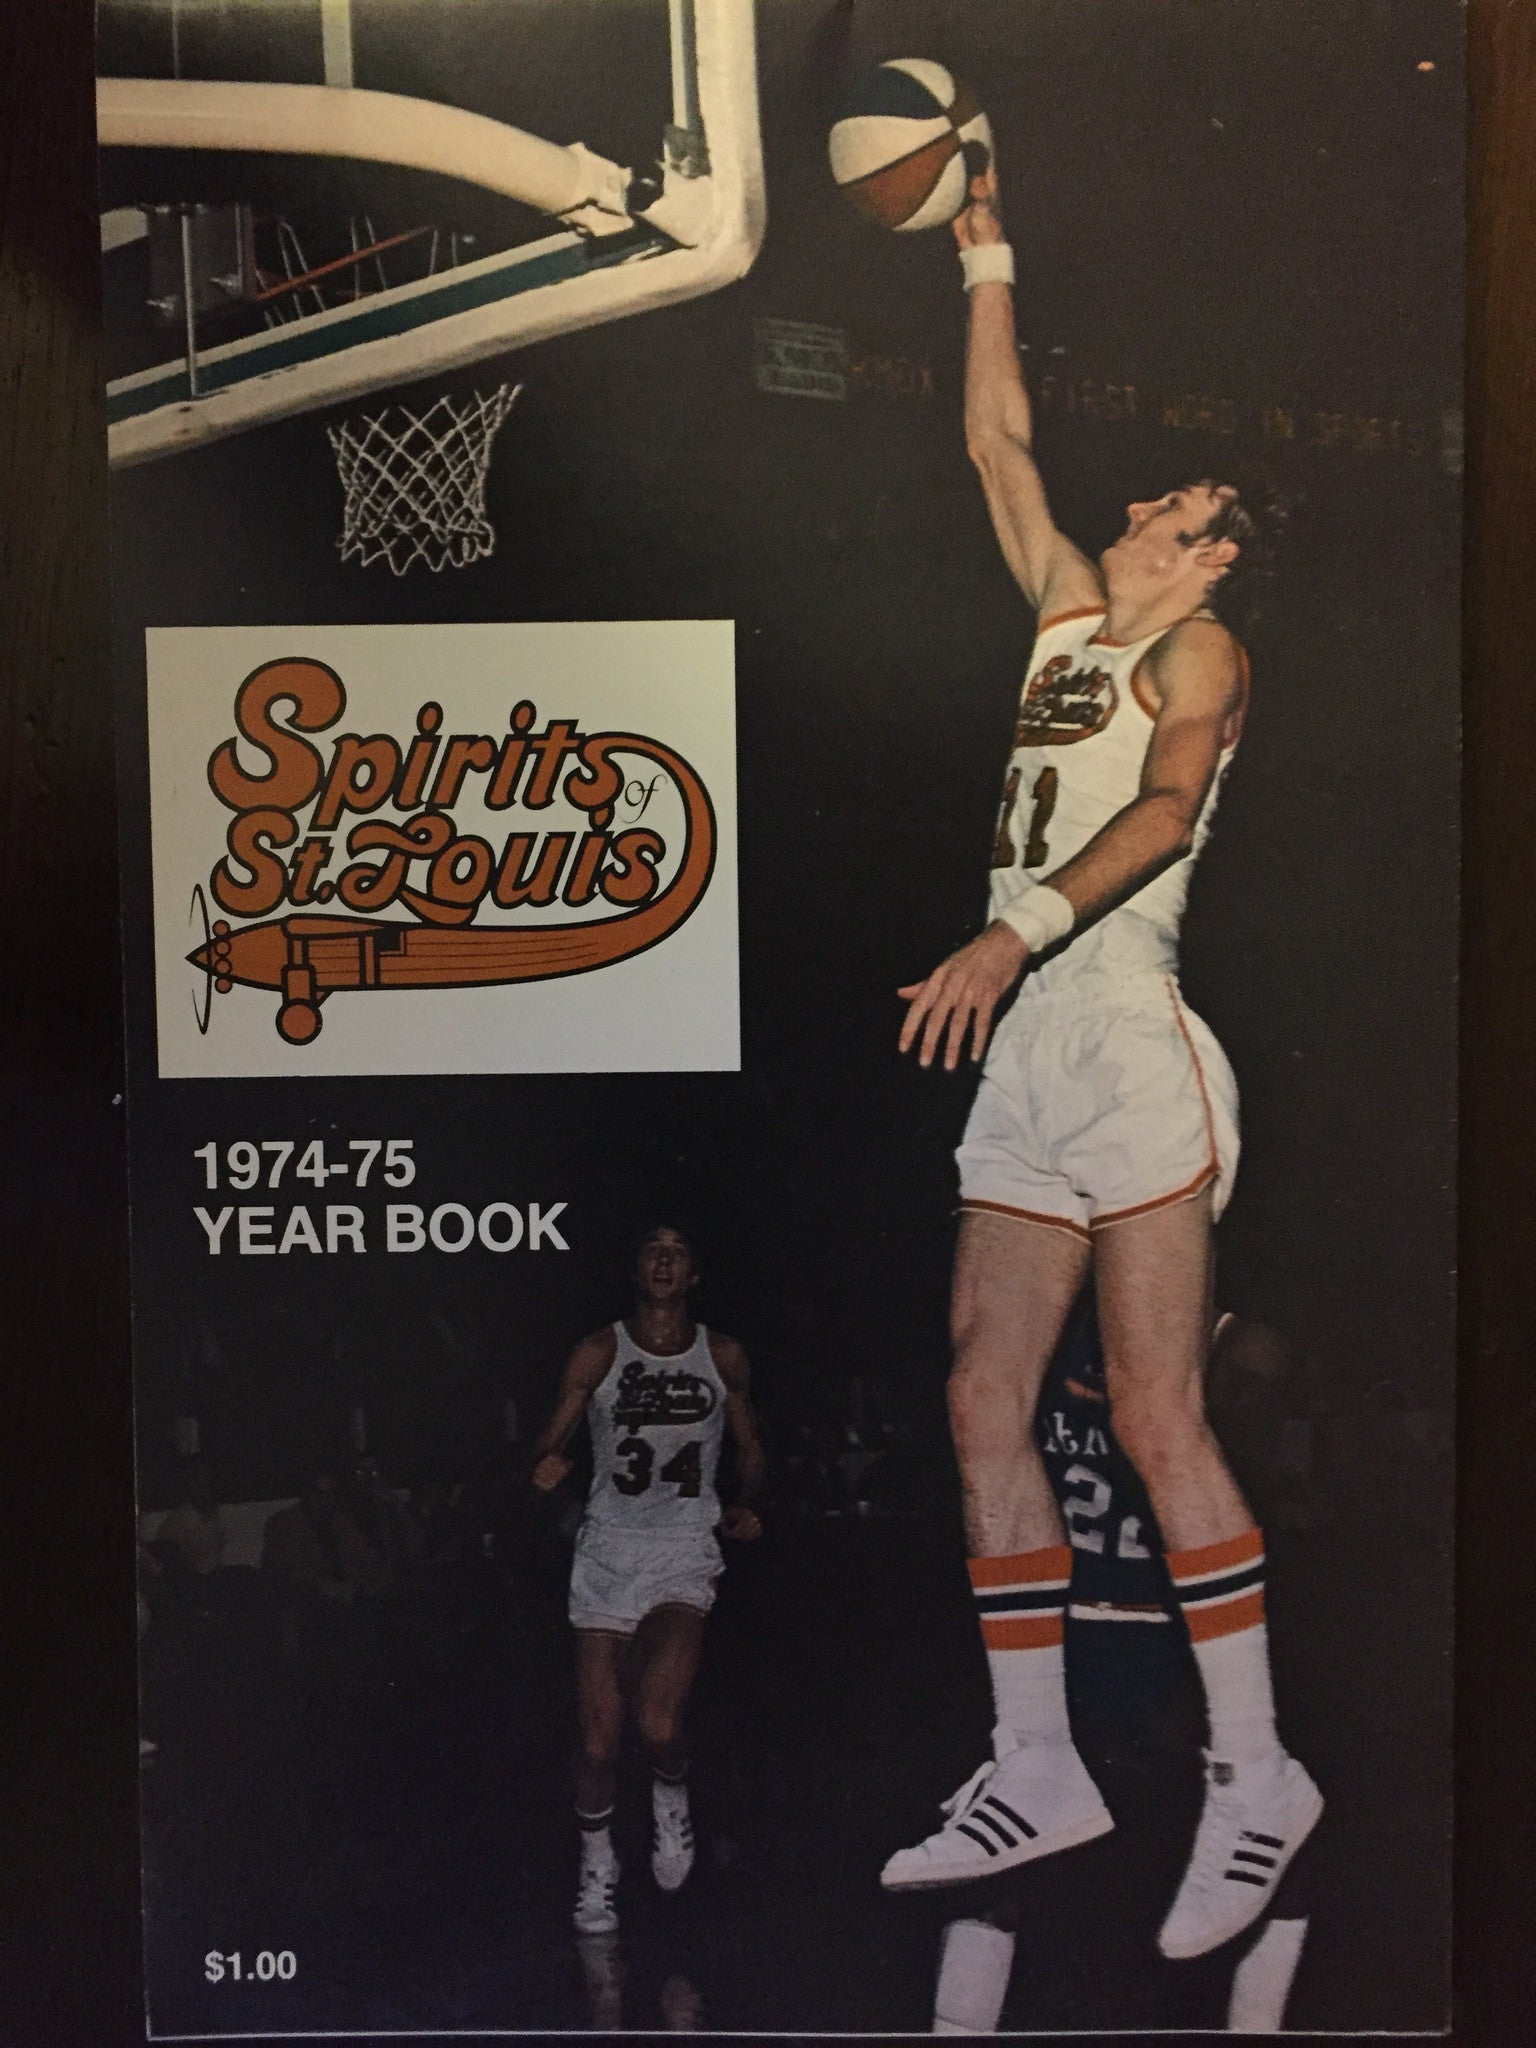 1974-75 ABA Basketball Spirts of St. Louis Yearbook - Vintage Indy Sports